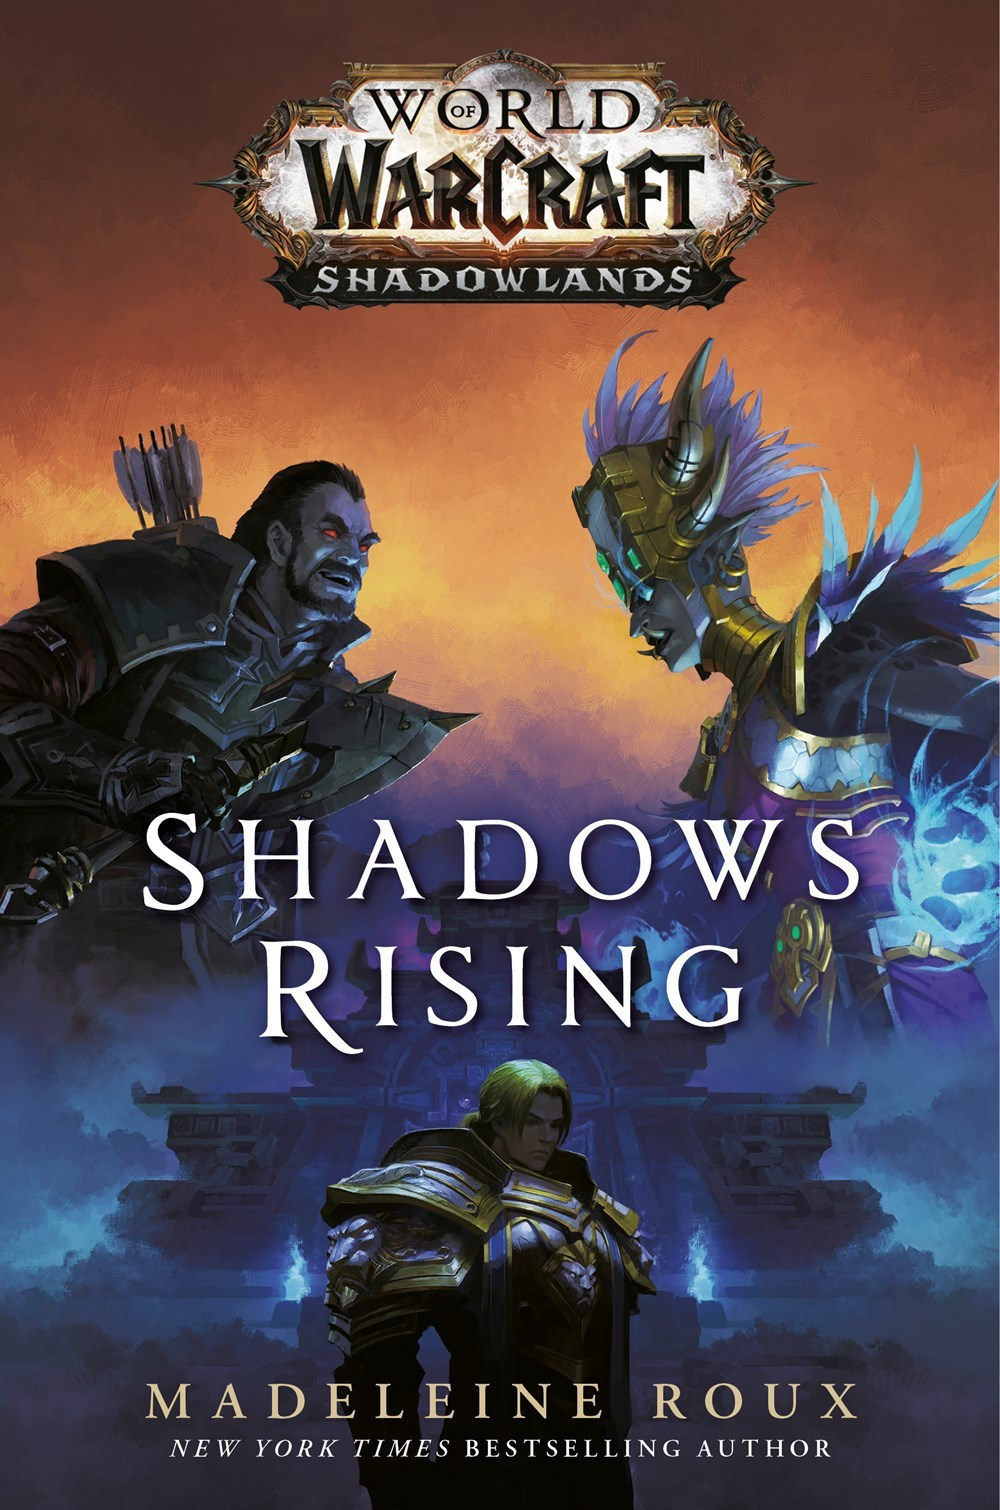 World of Warcraft: Shadows Rising by Madeleine Roux image